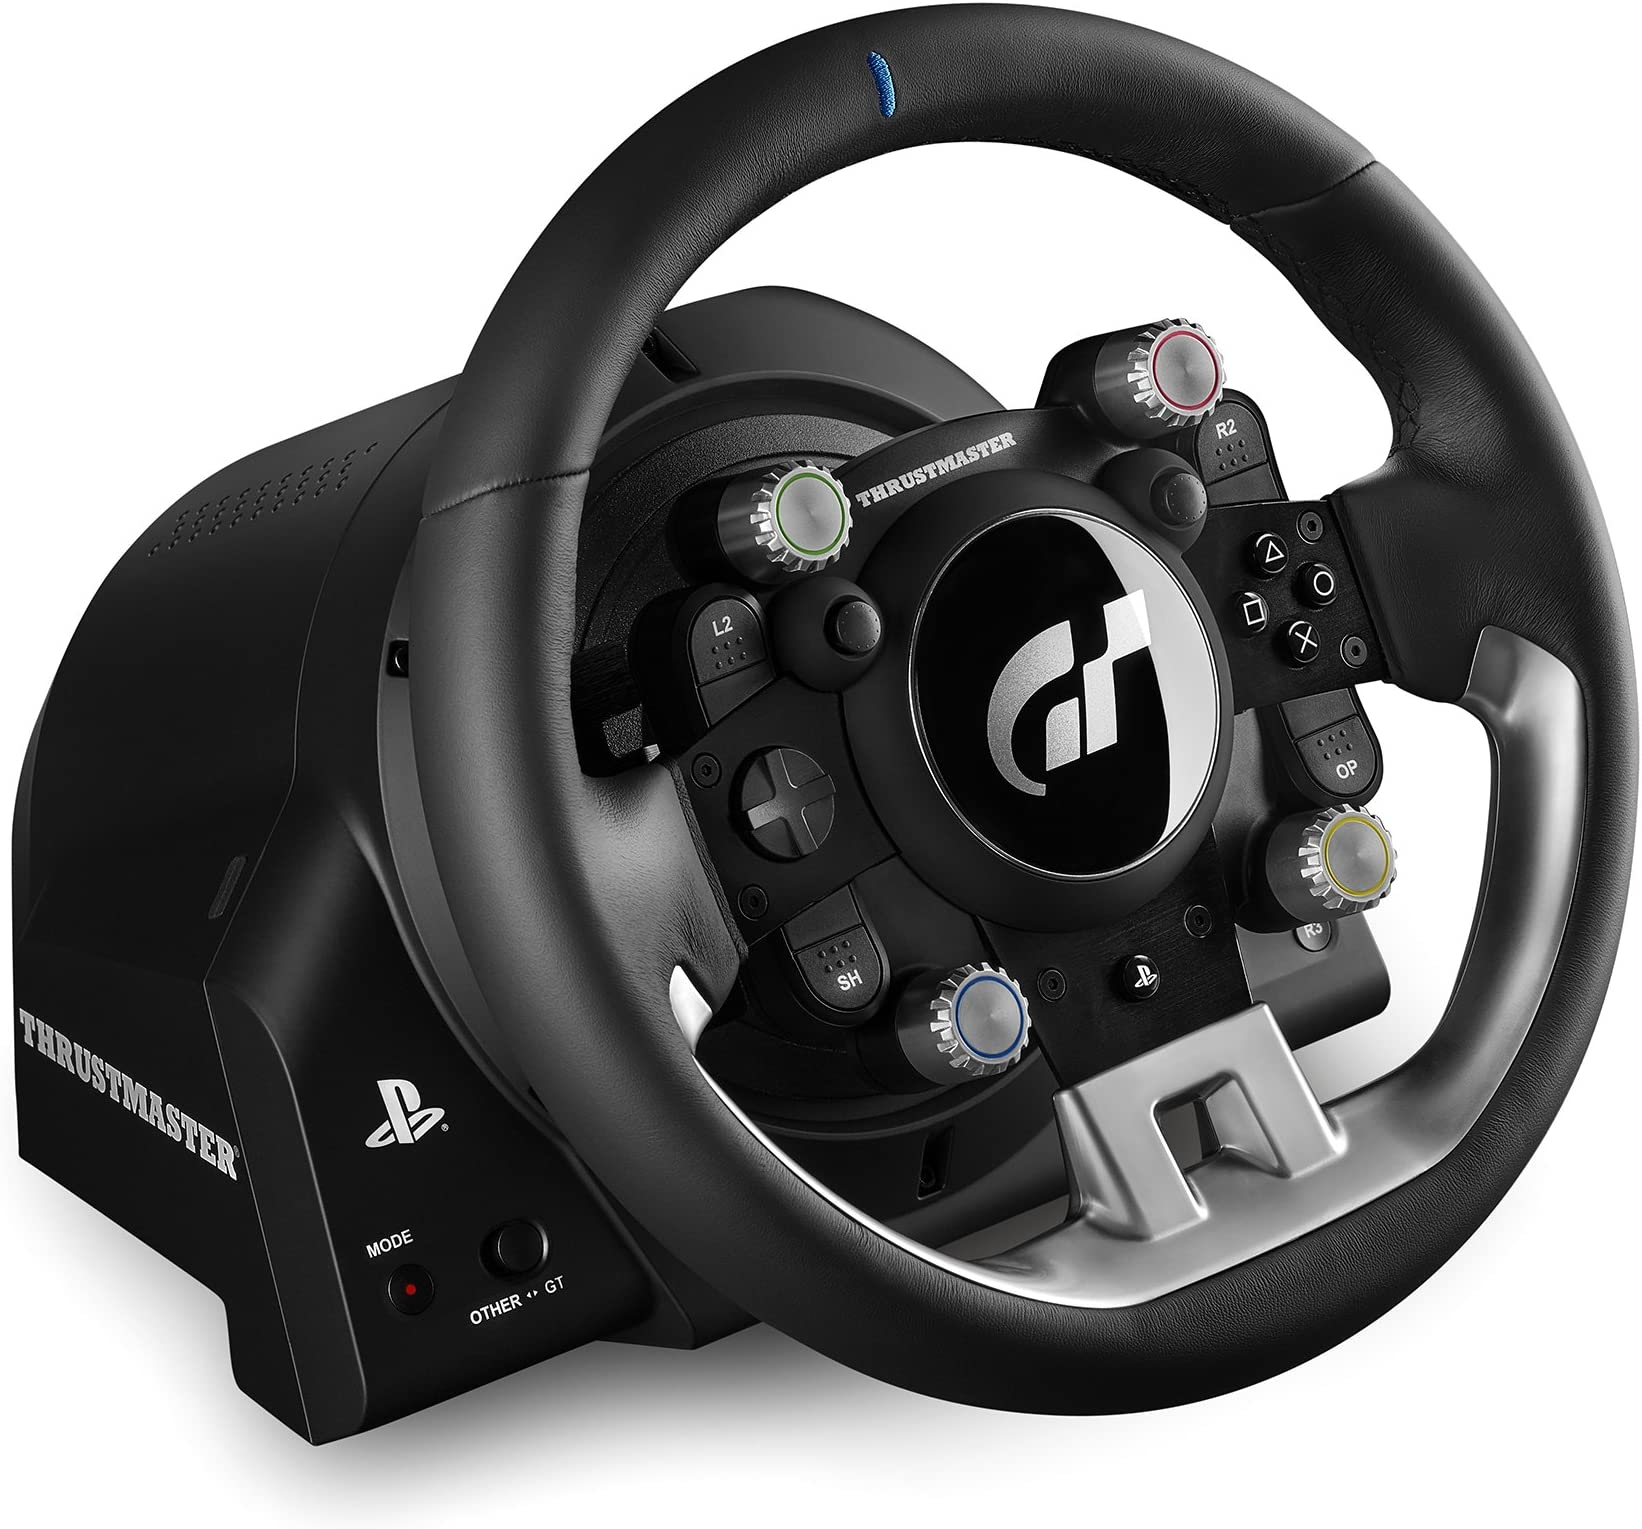 Thrustmaster T Gt Racing Wheel Ps4 Pc Video Games Business Office Industrial Automation Motors Drives Control Image Unavailable